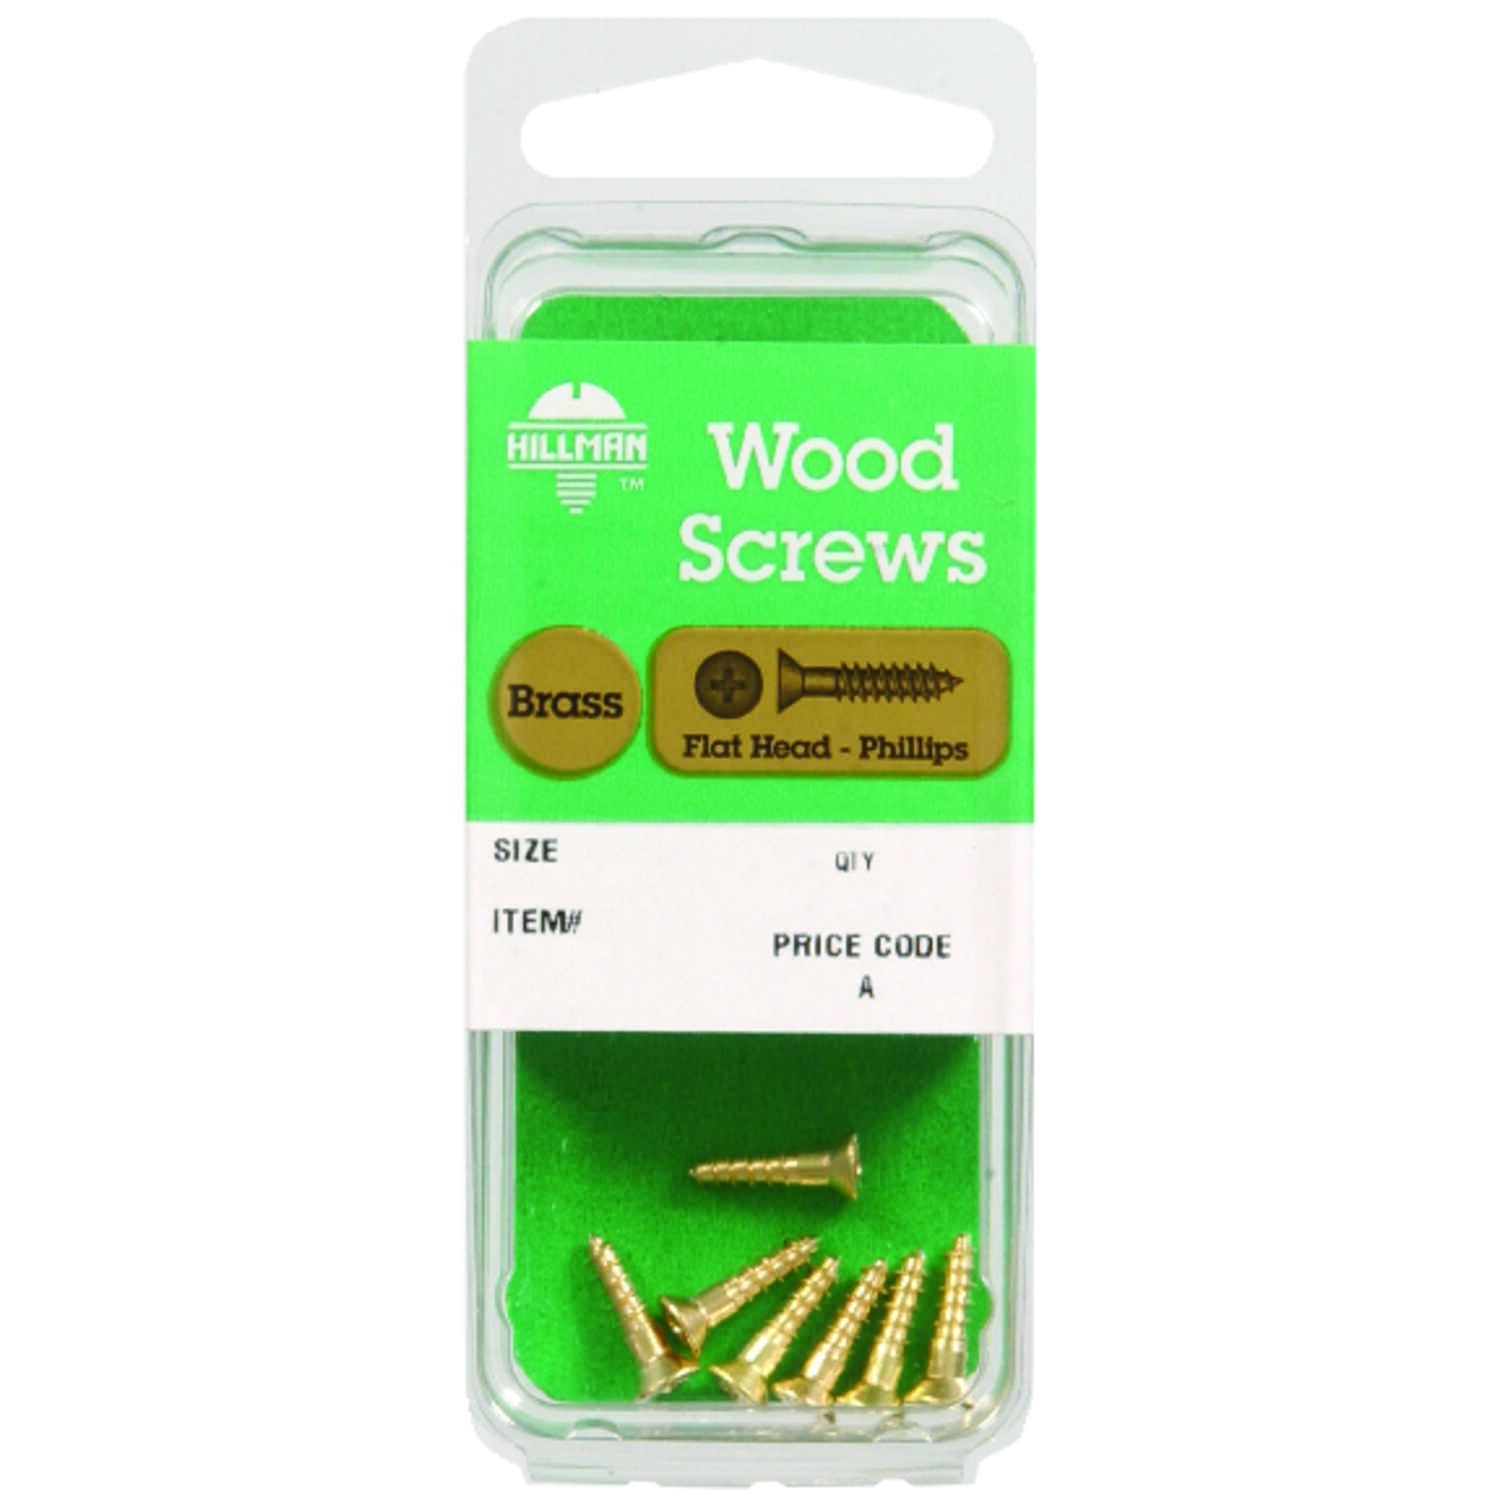 Hillman  No. 10   x 1-1/4 in. L Phillips  Flat Head Brass  Wood Screws  3 pk